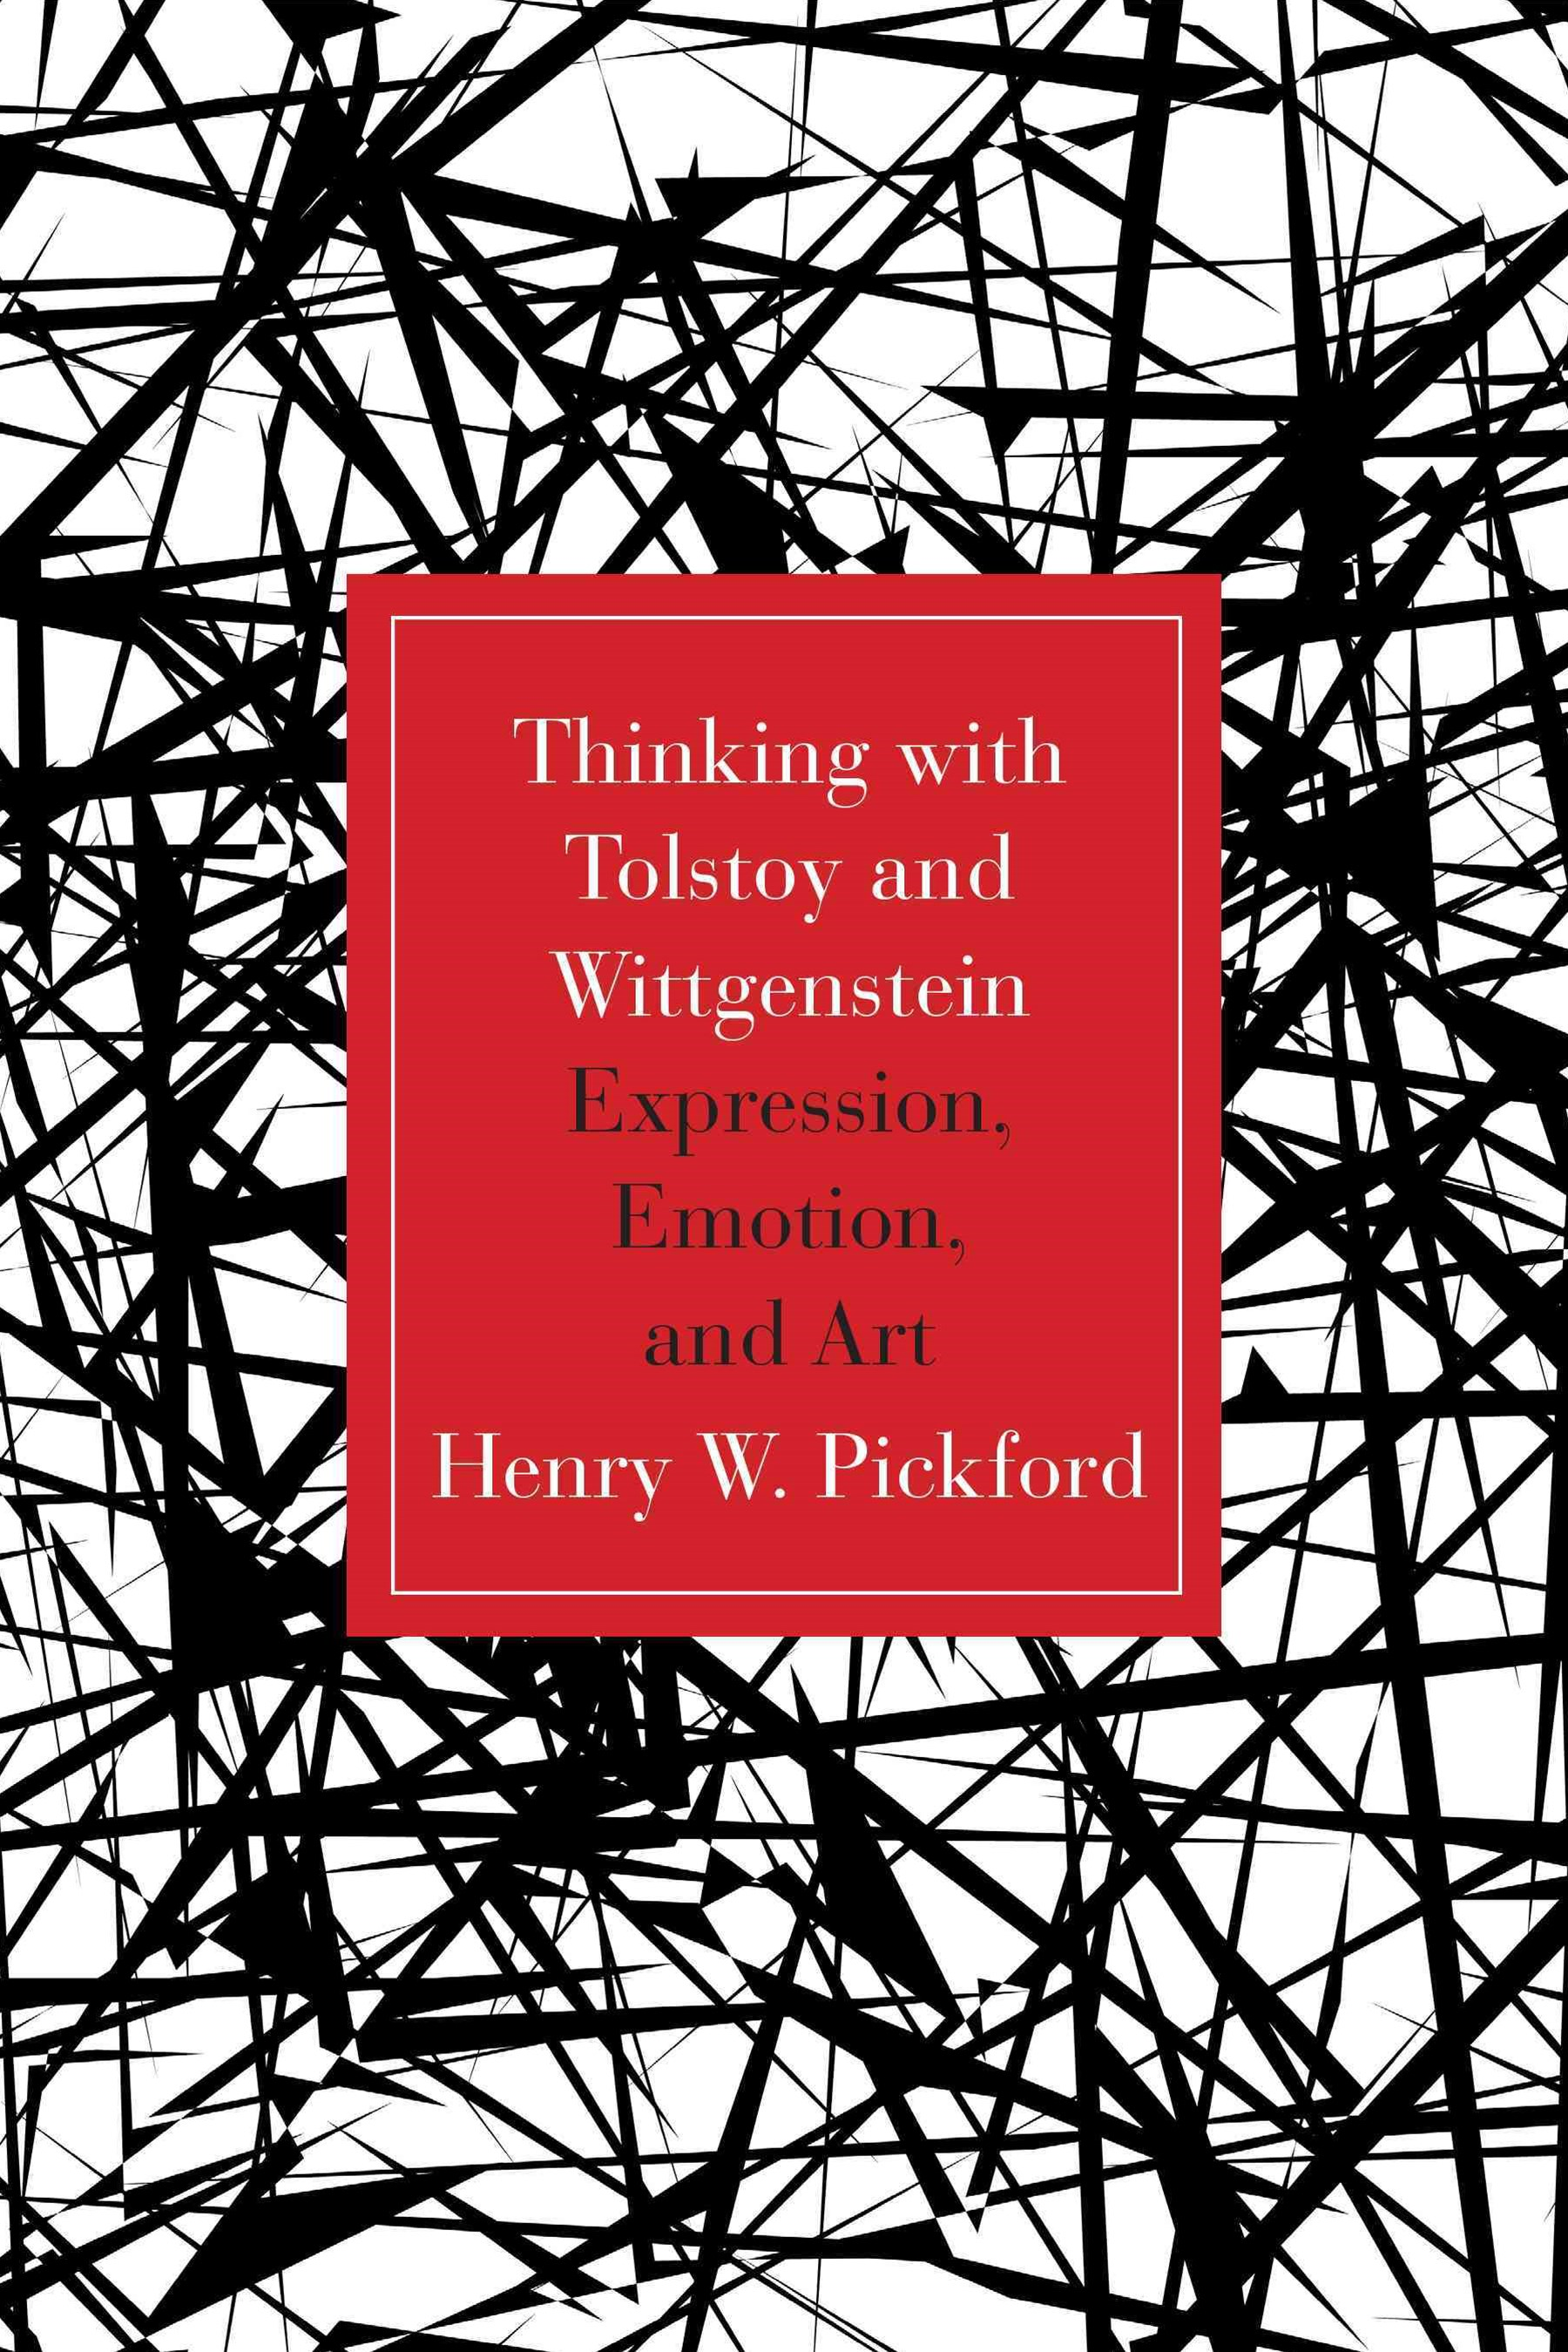 Thinking with Tolstoy and Wittgenstein